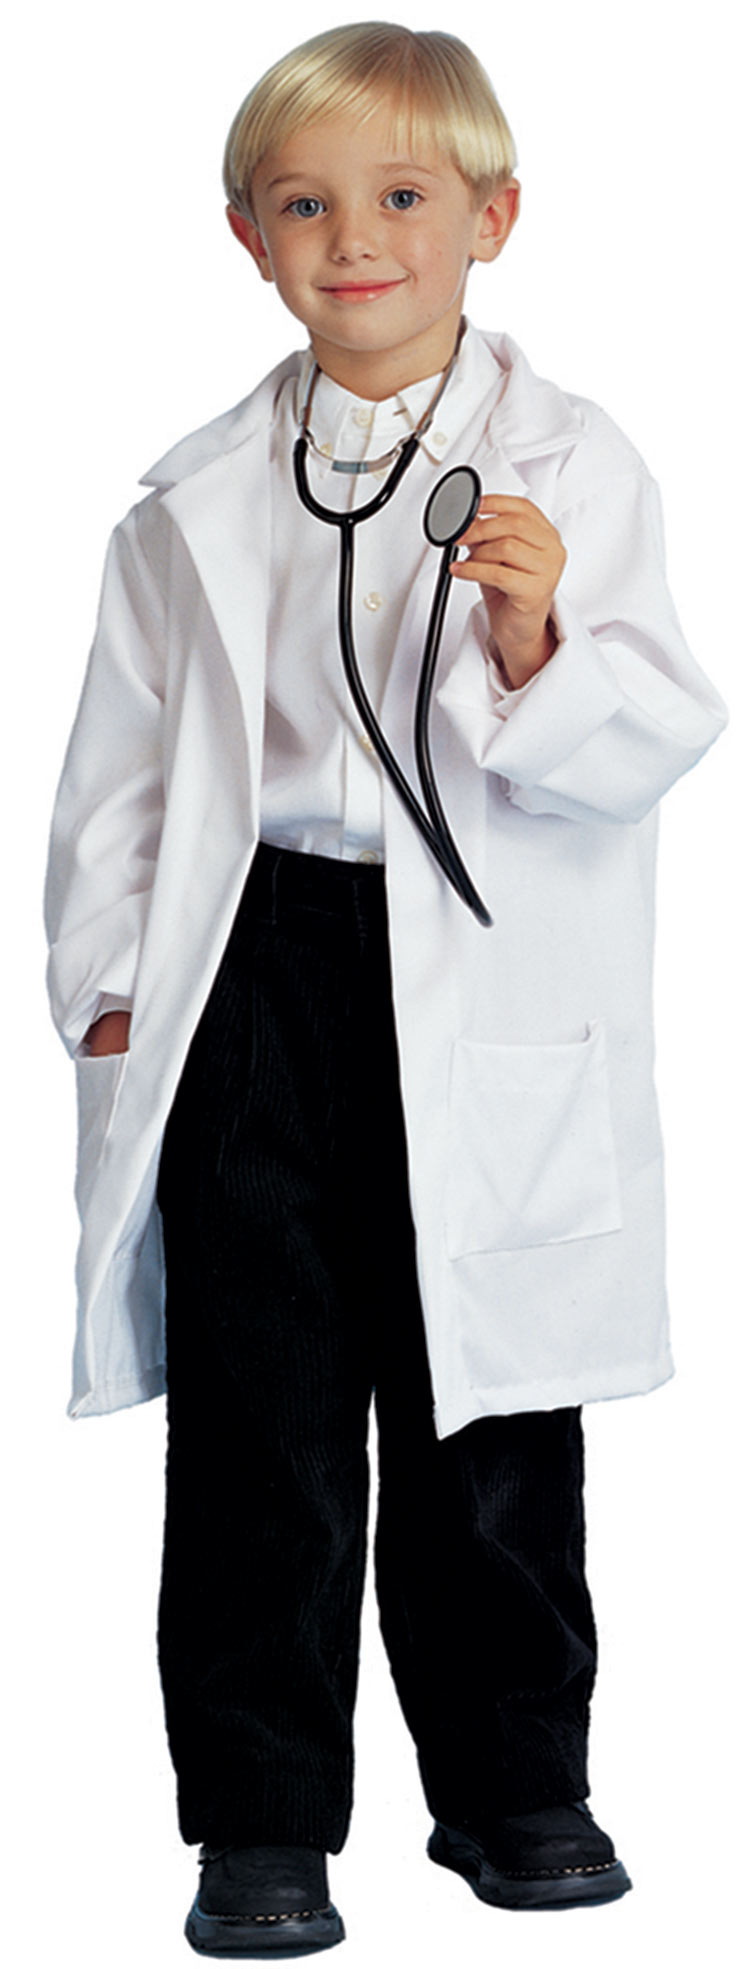 Doctor Or Mad Scientist Kids Costume - Doctor Costumes